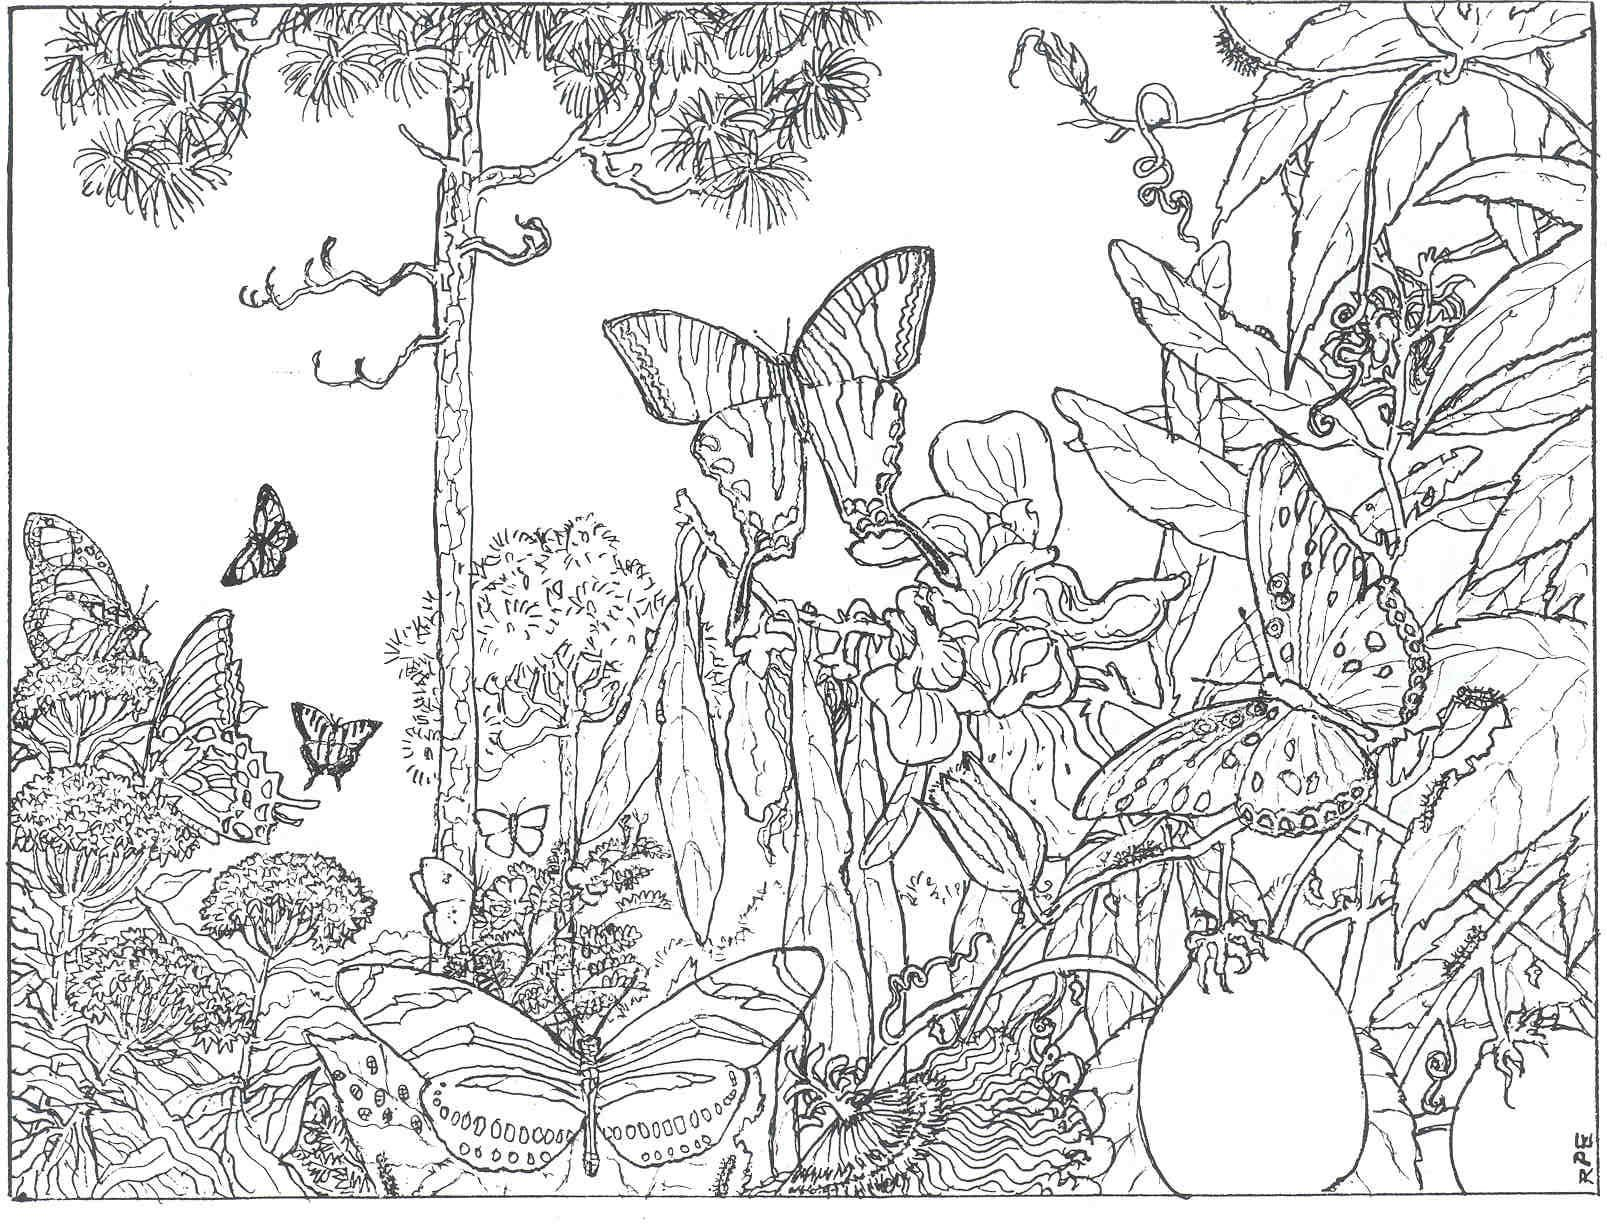 coloring pages forest Kaysmakehaukco